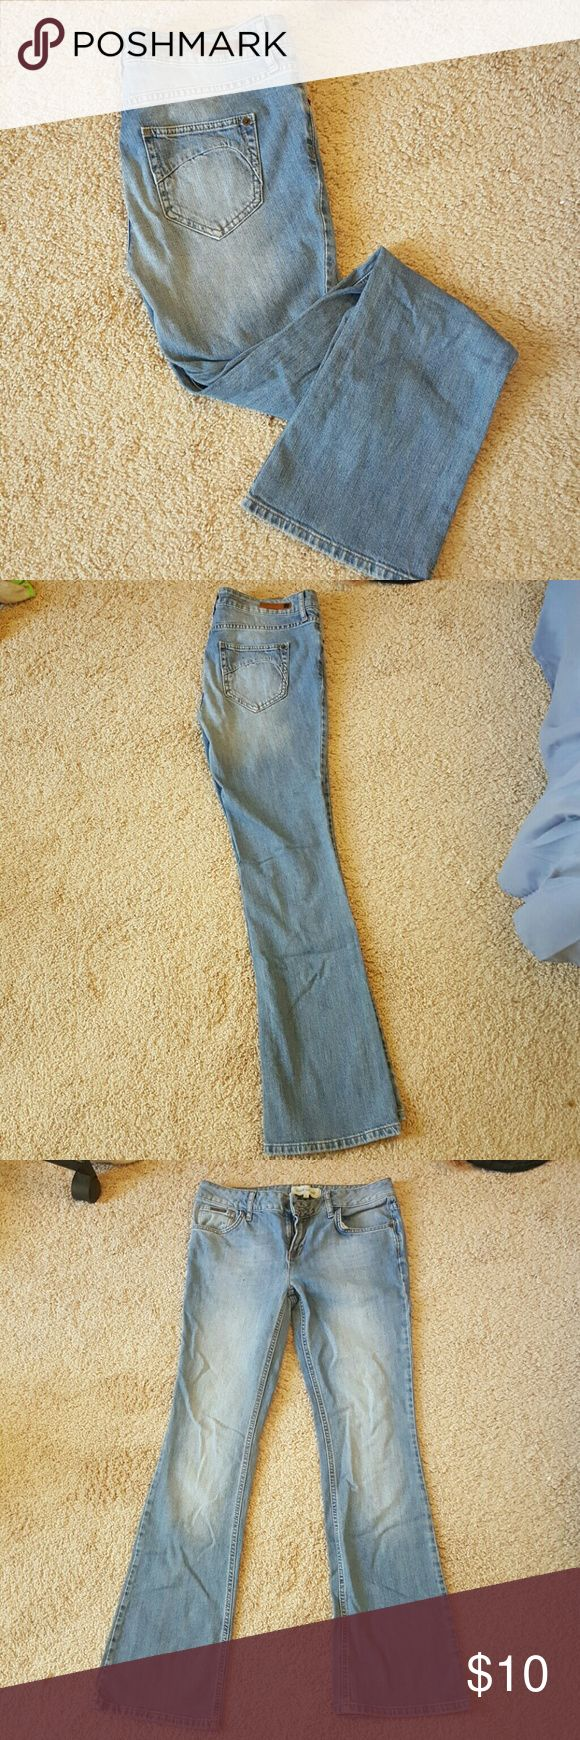 Boot cut jeans from River Island A medium colour blue (almost light colour) , with a subtle white patches in the middle. Size 38 European. Will be ironed before shipping. River Island Jeans Boot Cut